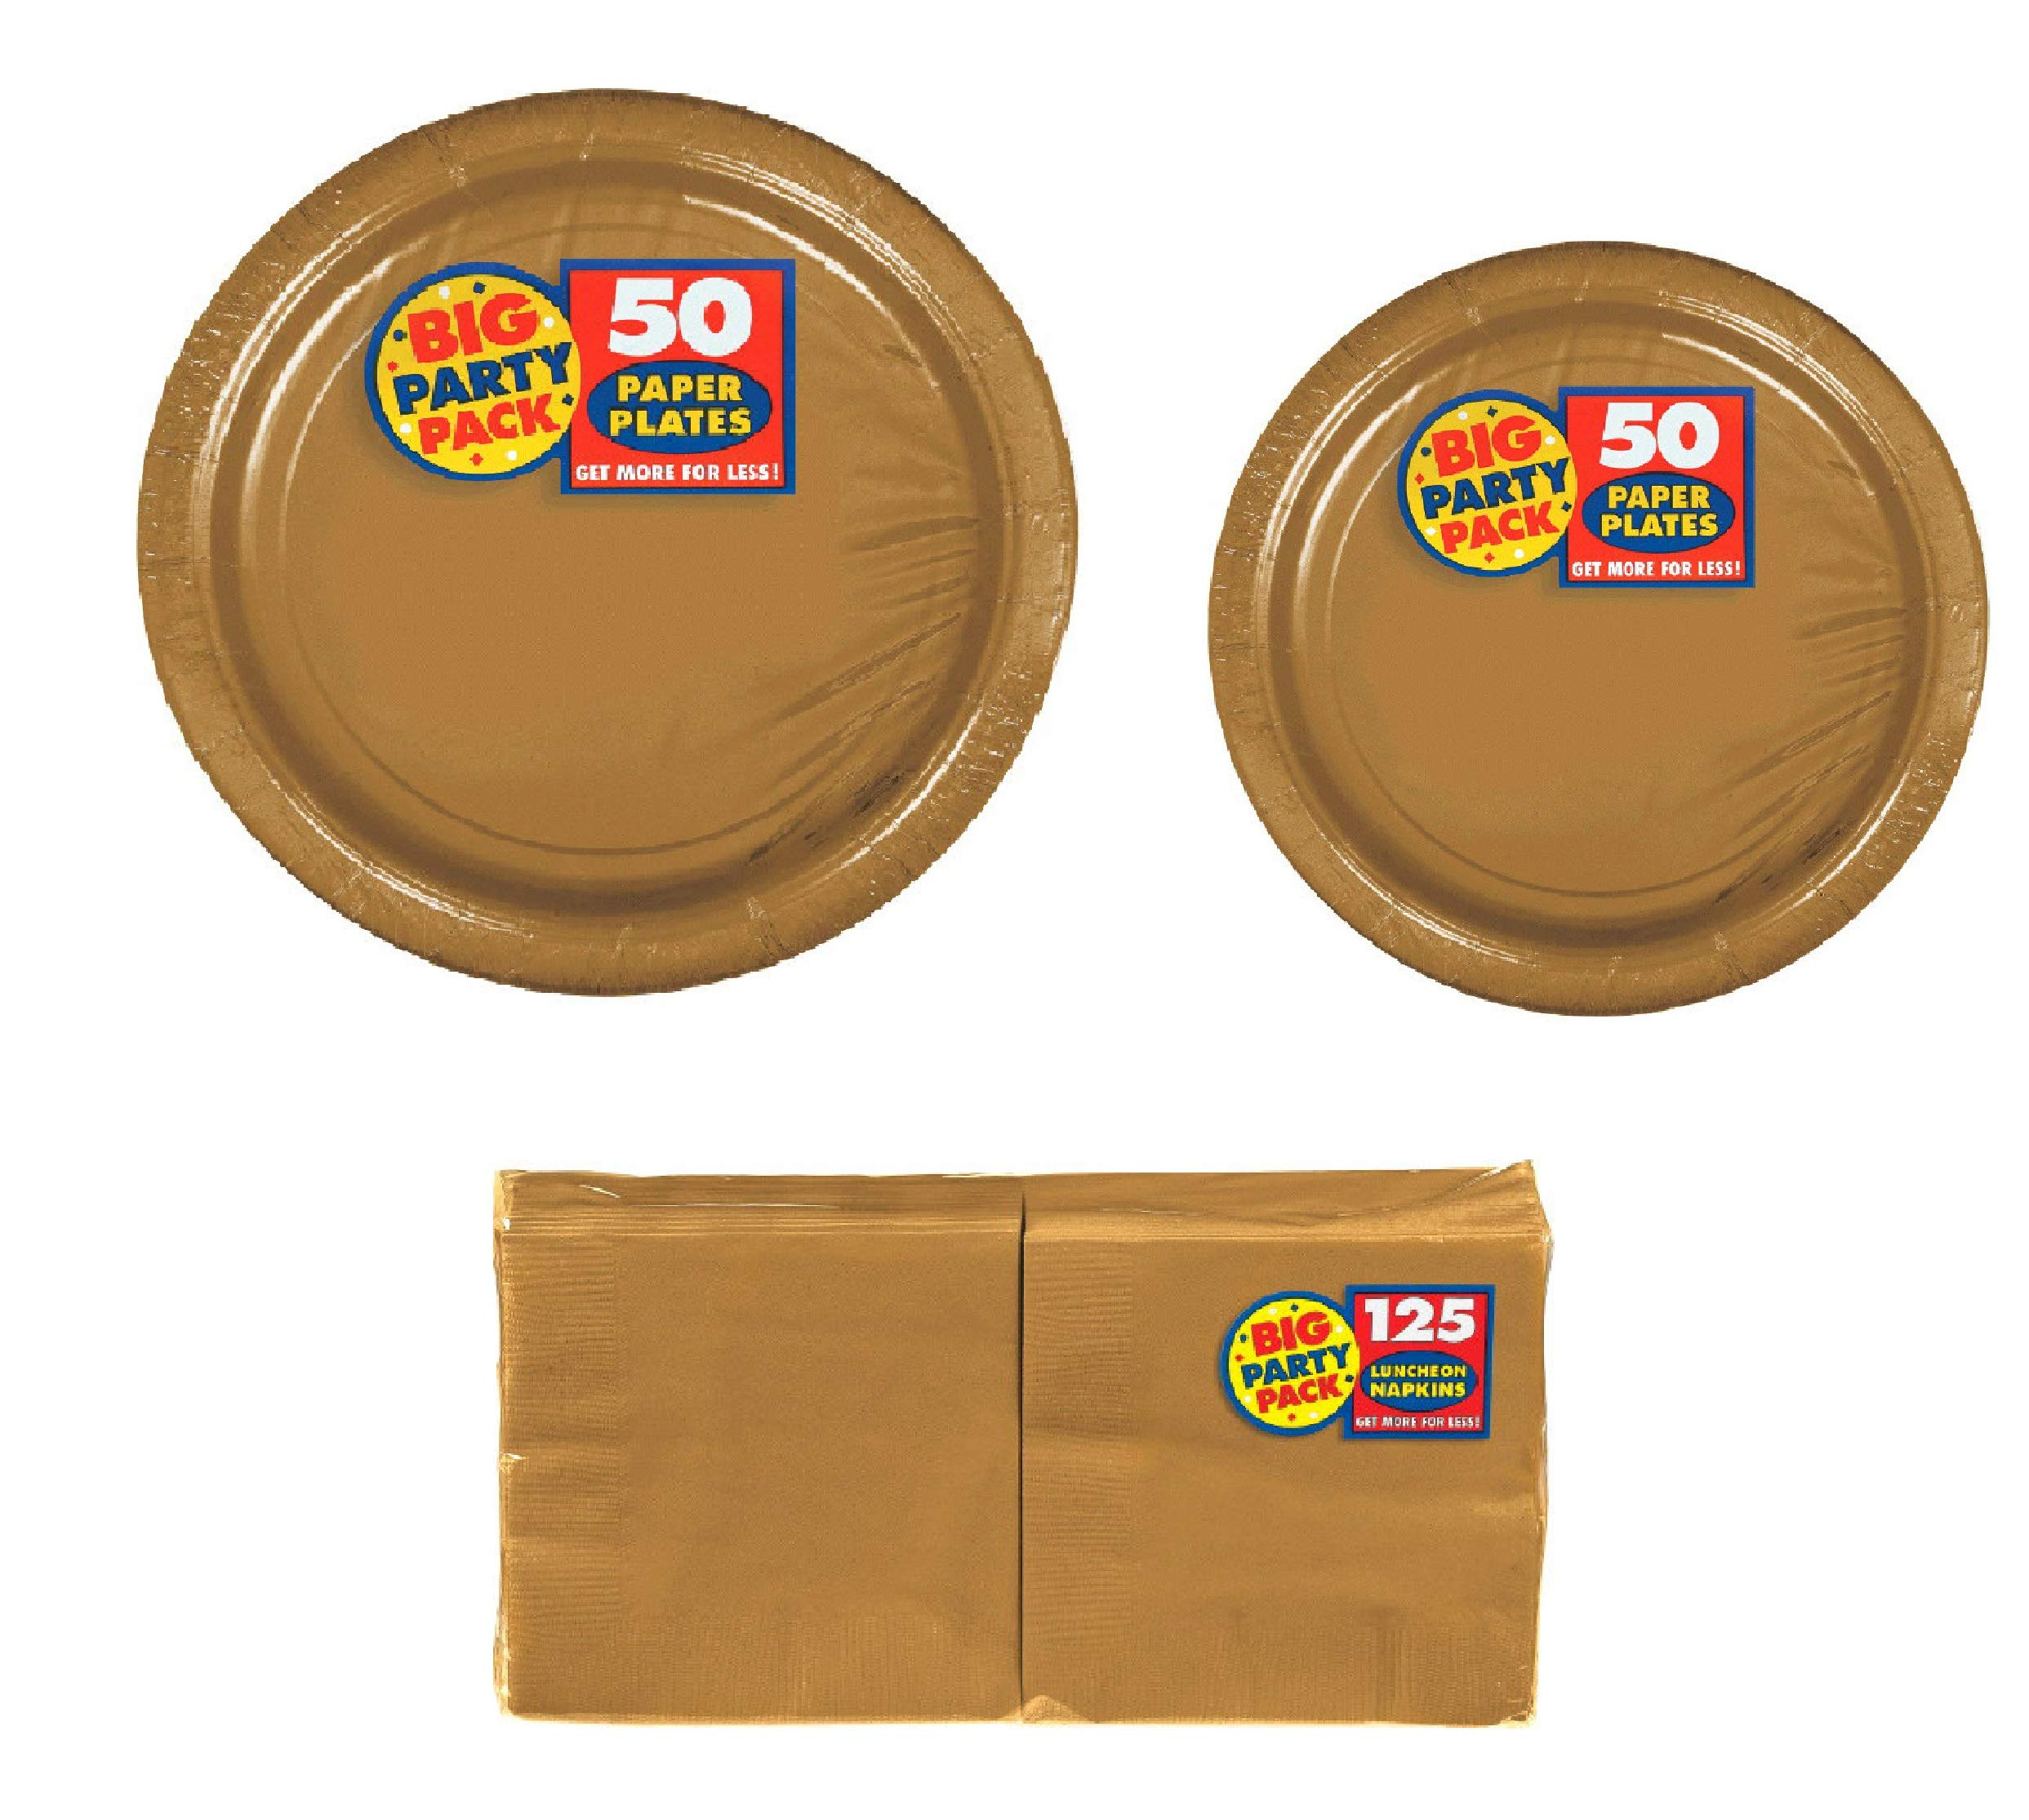 Amscan Big Party Supplies Pack Solid Gold Color Bundle set for 50 Guests 9'' Dinner Paper Plates, 7'' Luncheon Paper Plates and, 2-ply Luncheon Napkins with a Complementary Recipe Card by Delexiana